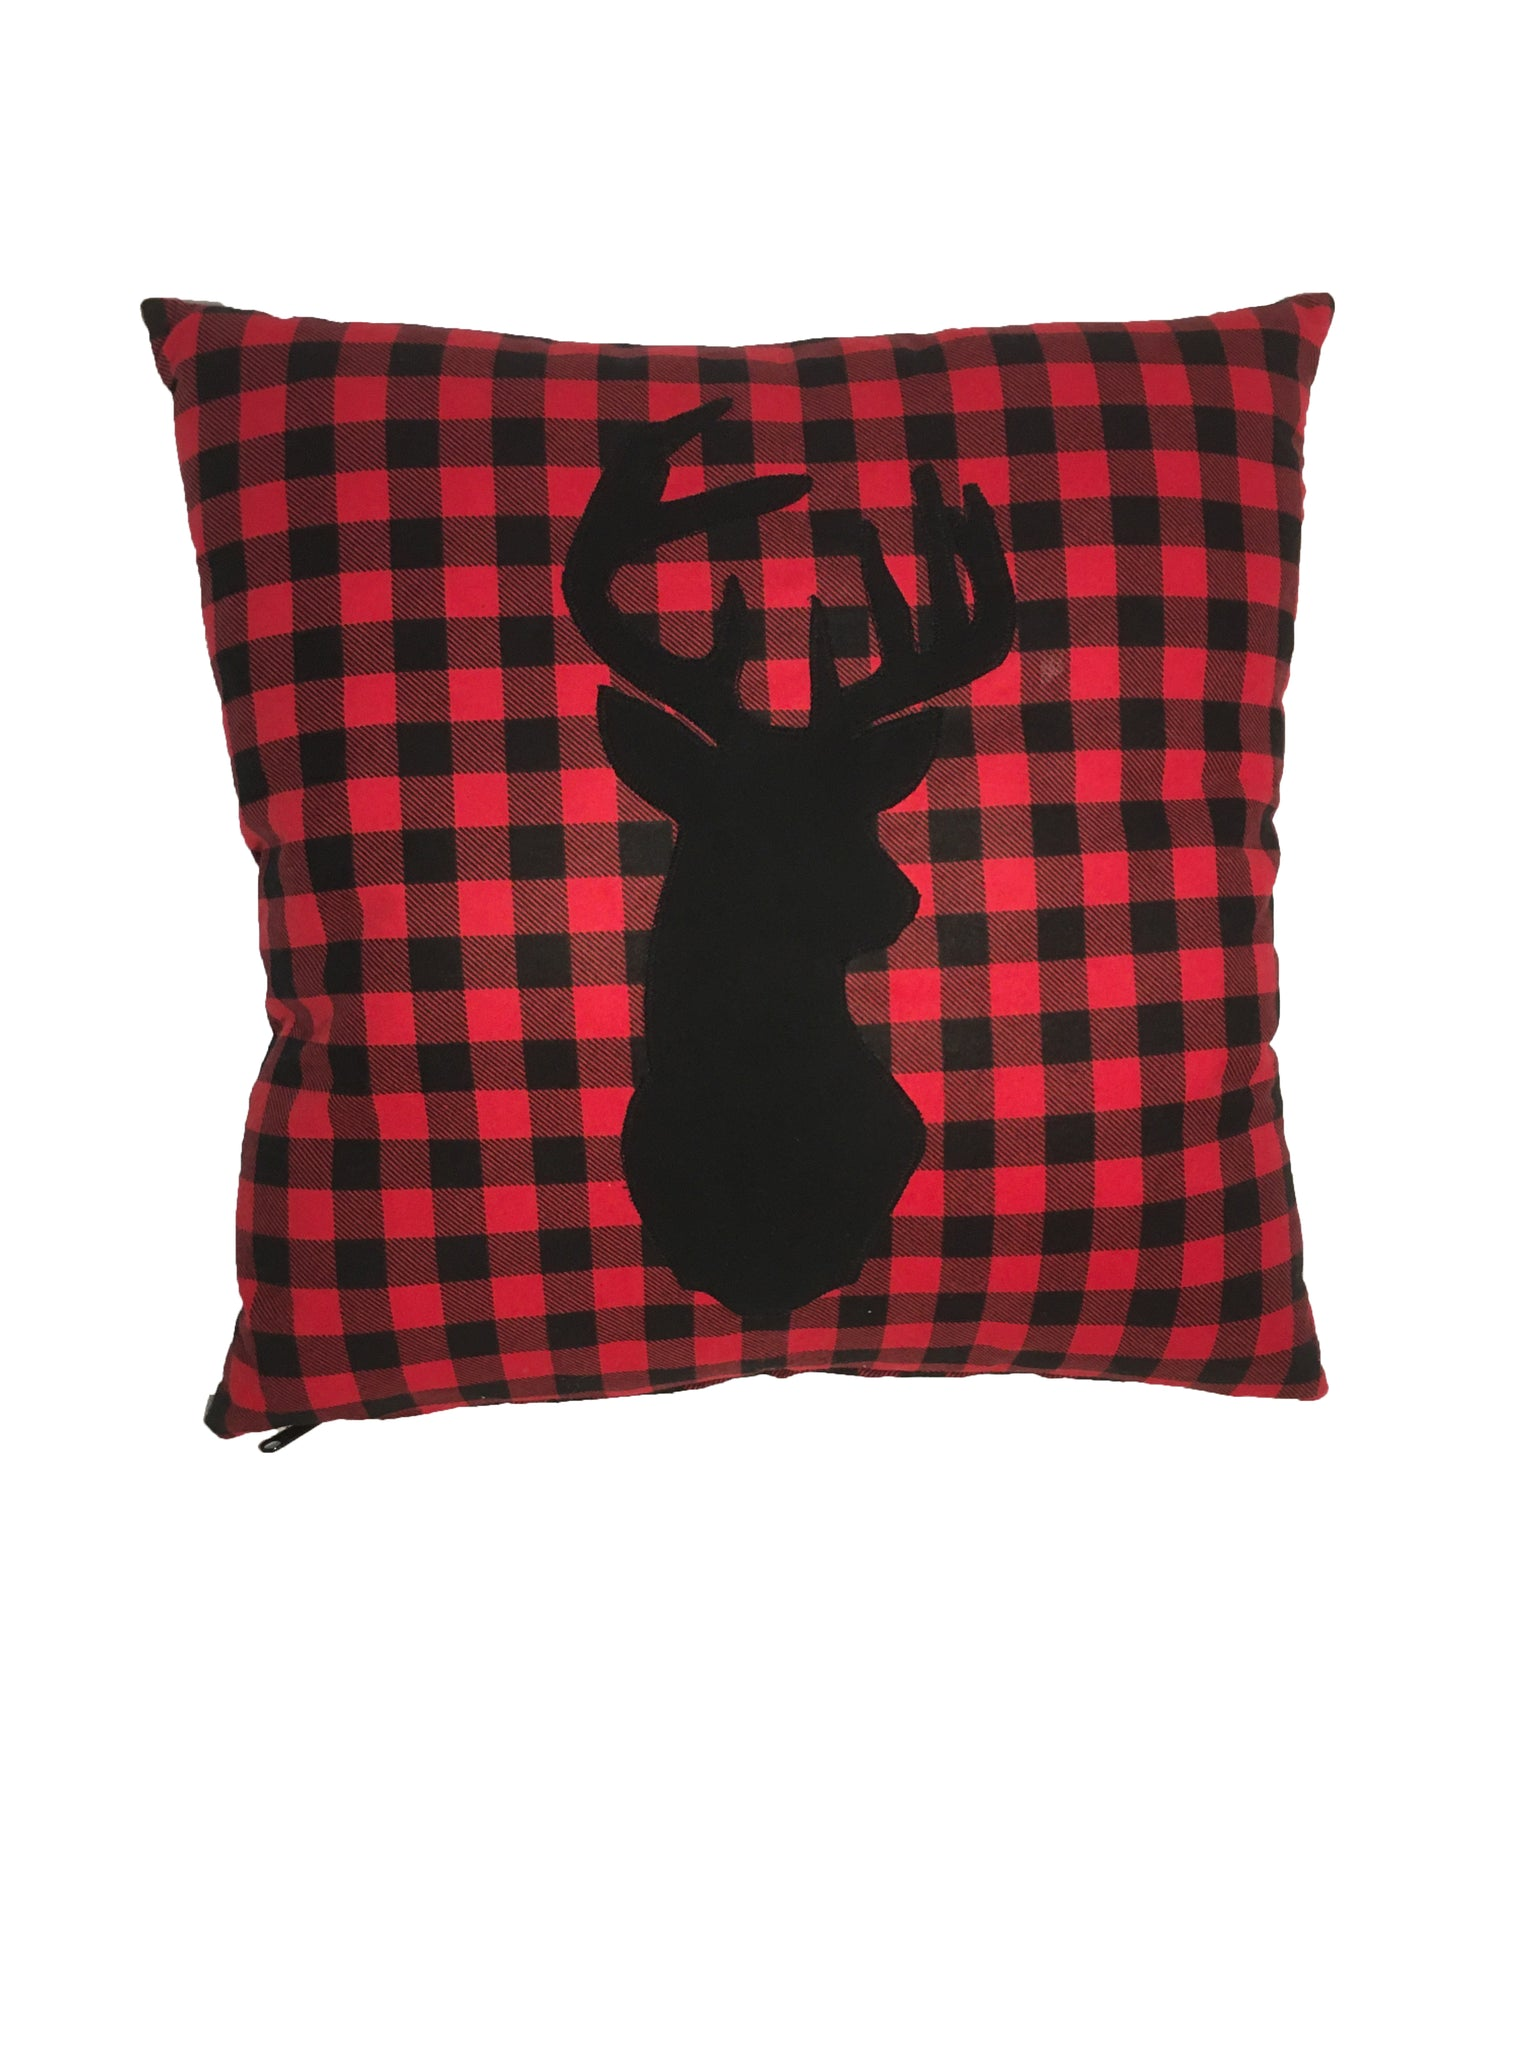 Red/Black checkered deer pillow - Northwoods Decor